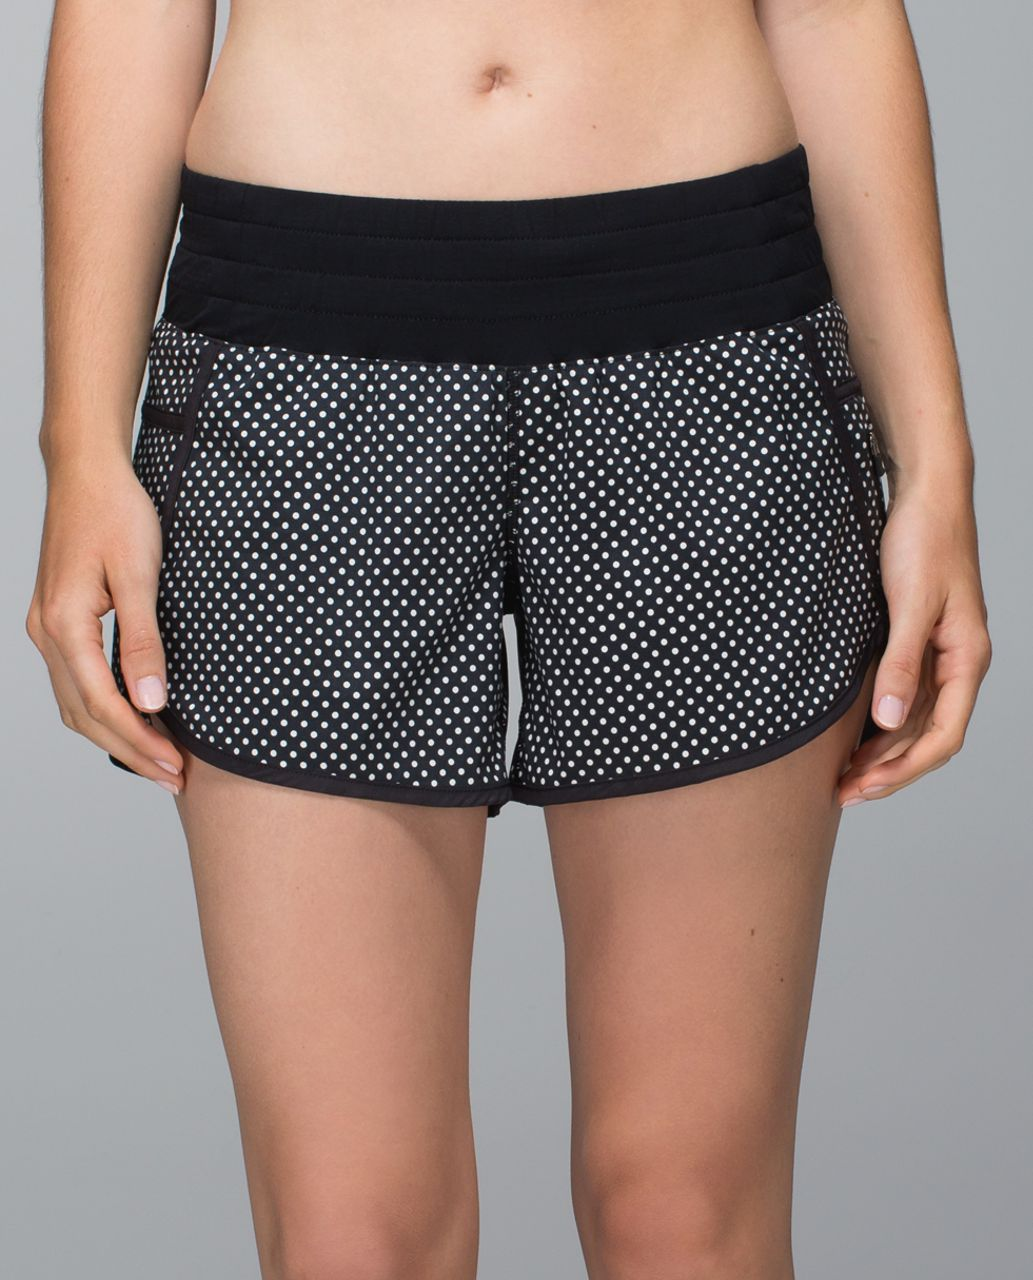 Lululemon Tracker Short II *2-way Stretch - Biggy Dot Printed Black Ghost / Black